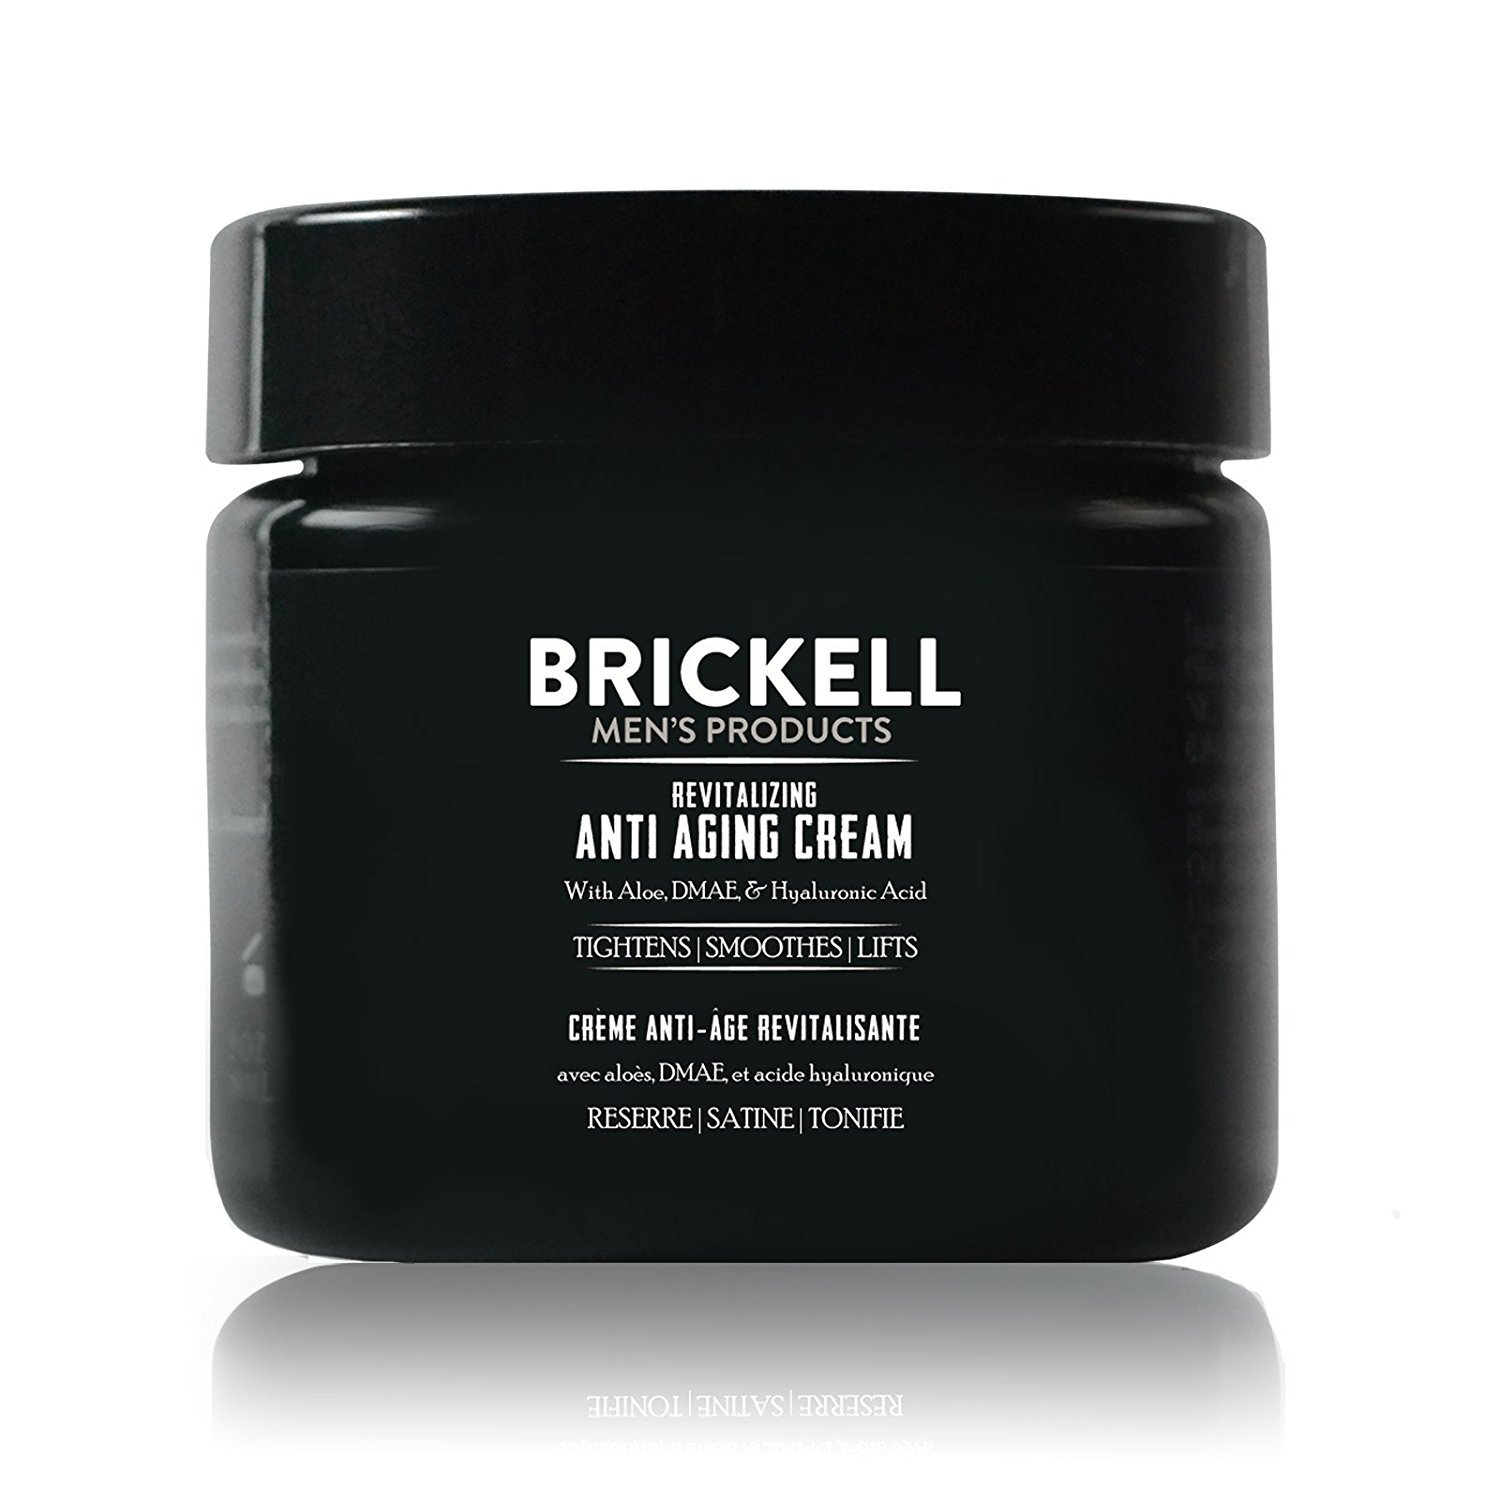 Brickell Men's Revitalizing Anti-Aging Cream For Men - Natural & Organic (Unscented, 2 Ounce) Brickell Men's Products